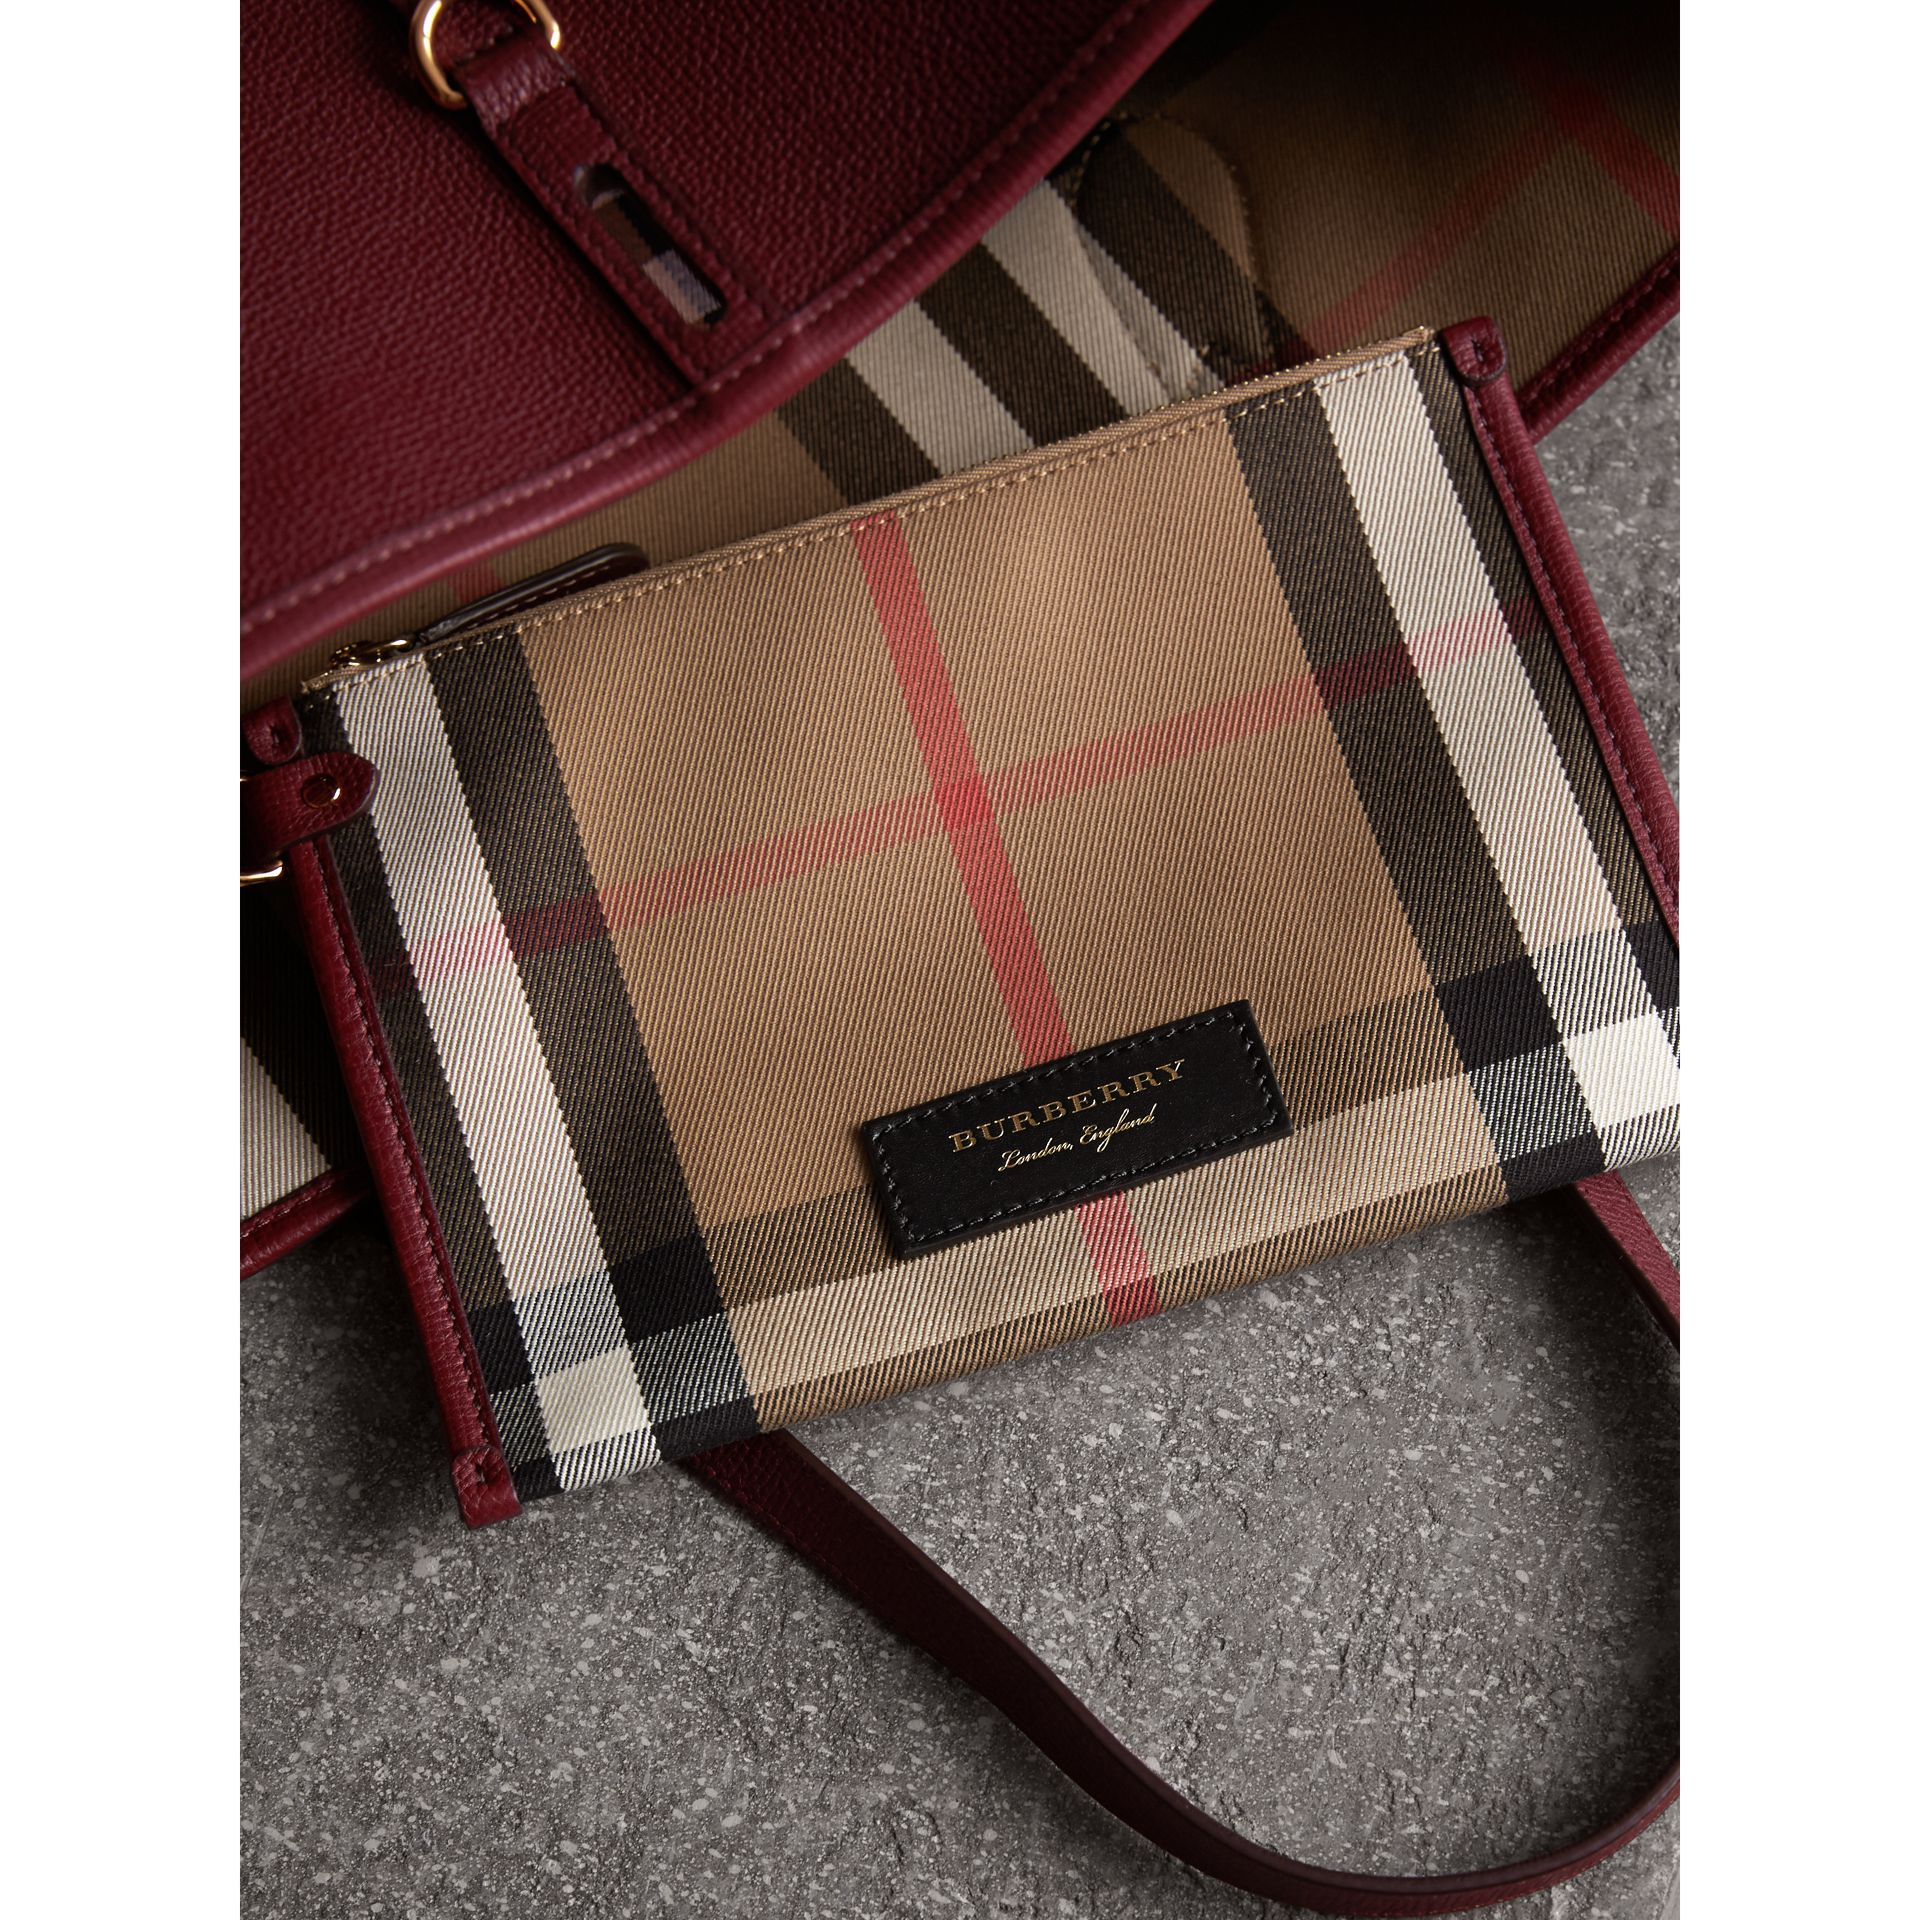 Medium Grainy Leather Tote Bag in Mahogany Red - Women | Burberry Hong Kong - gallery image 5